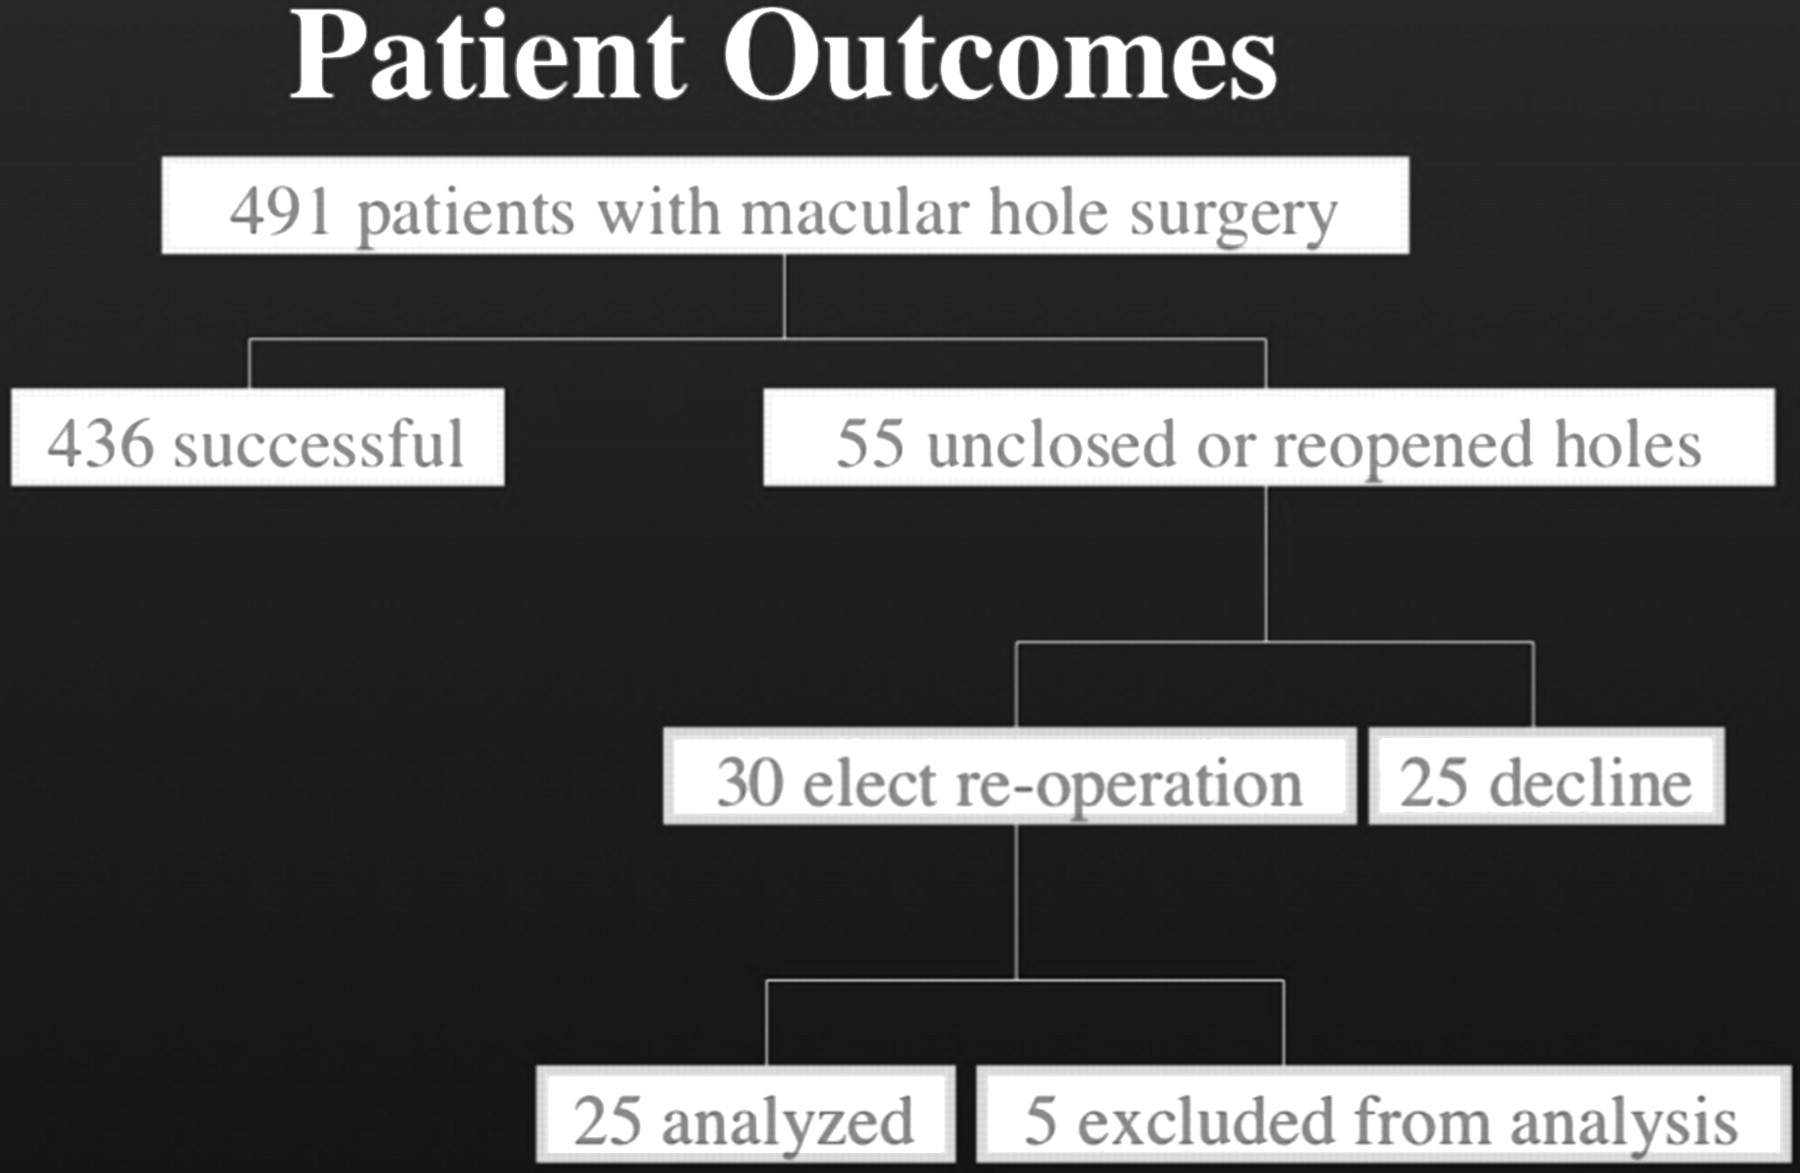 Re-operation of idiopathic full-thickness macular holes